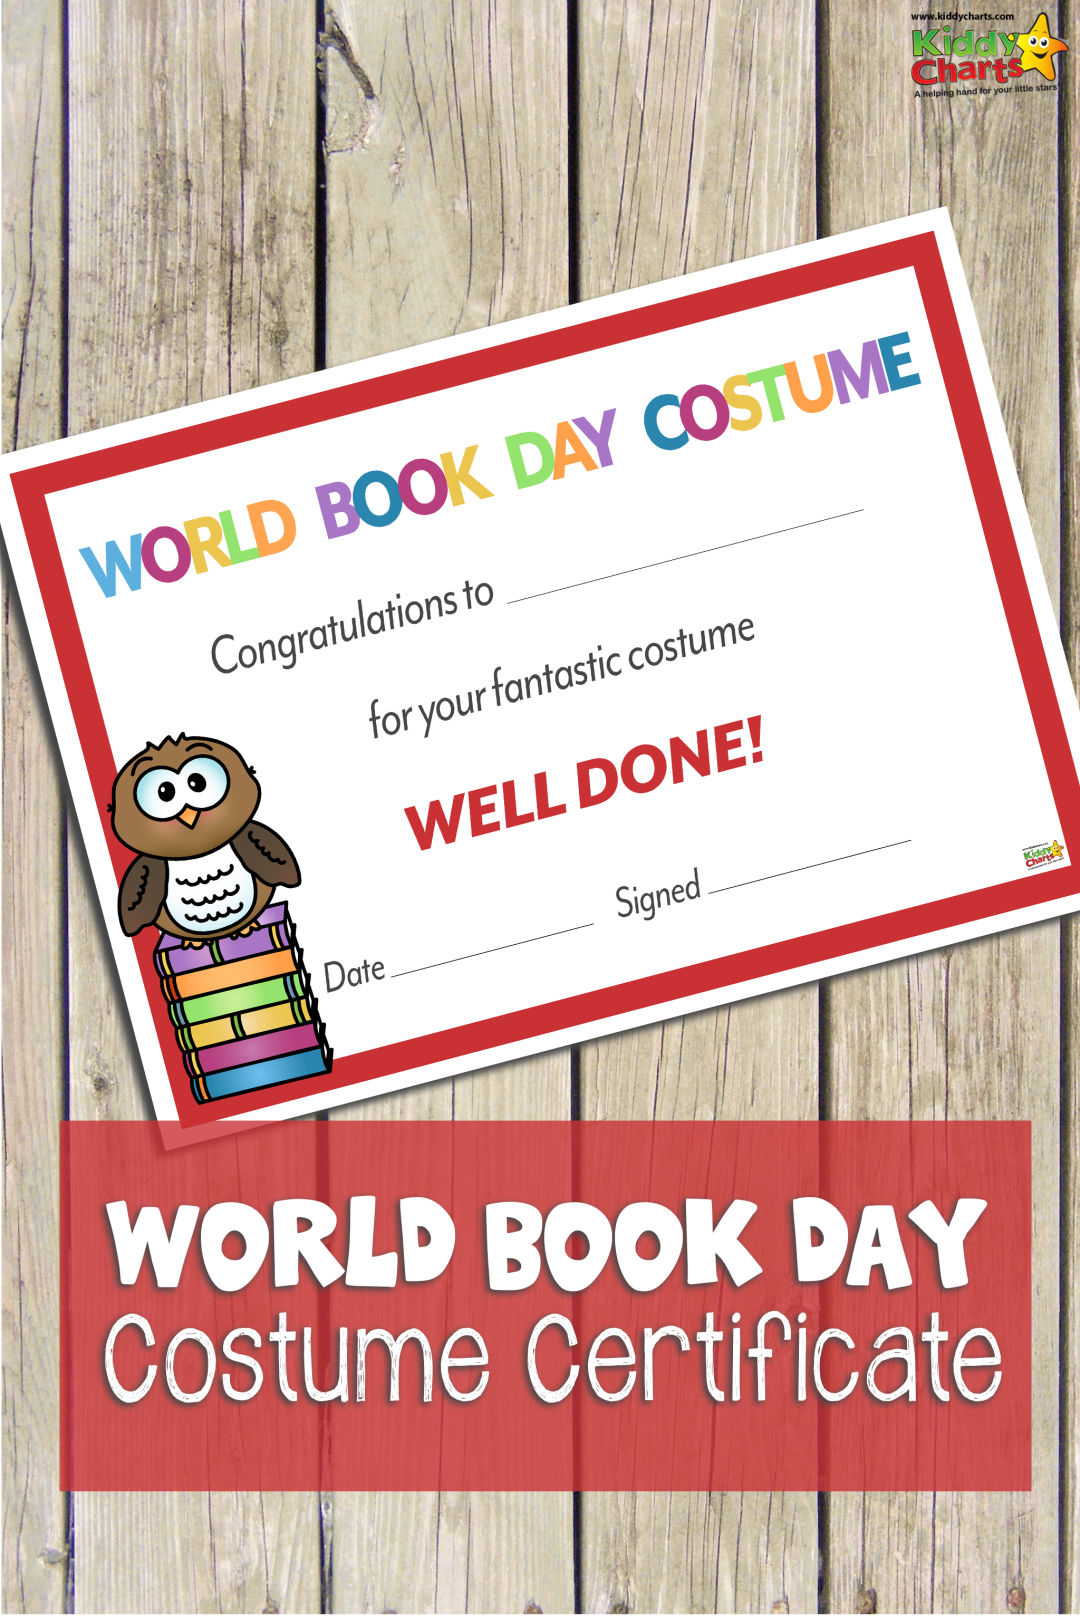 If you are after a World Book Day certificate for the best costume- we'd got one! Download it today. #boos #worldbokday #learning #certificates #free